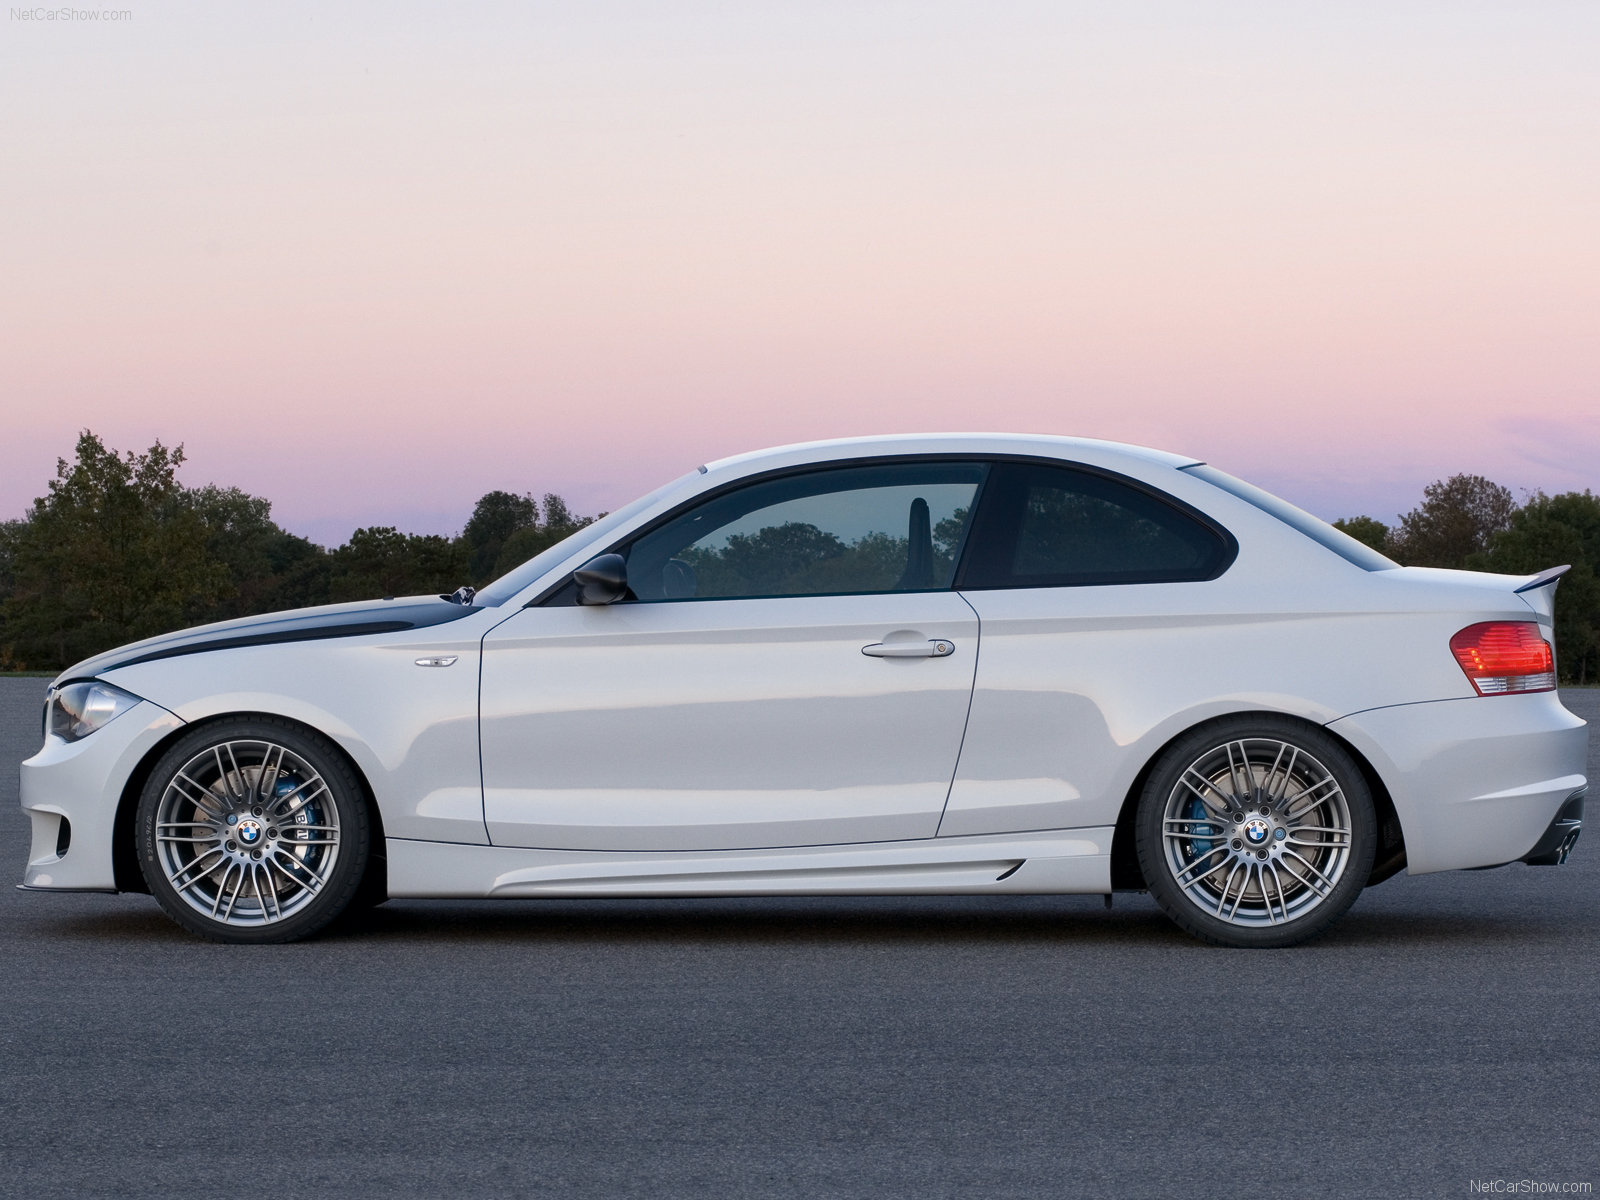 Bmw 1 Series Tii Photos Photogallery With 14 Pics